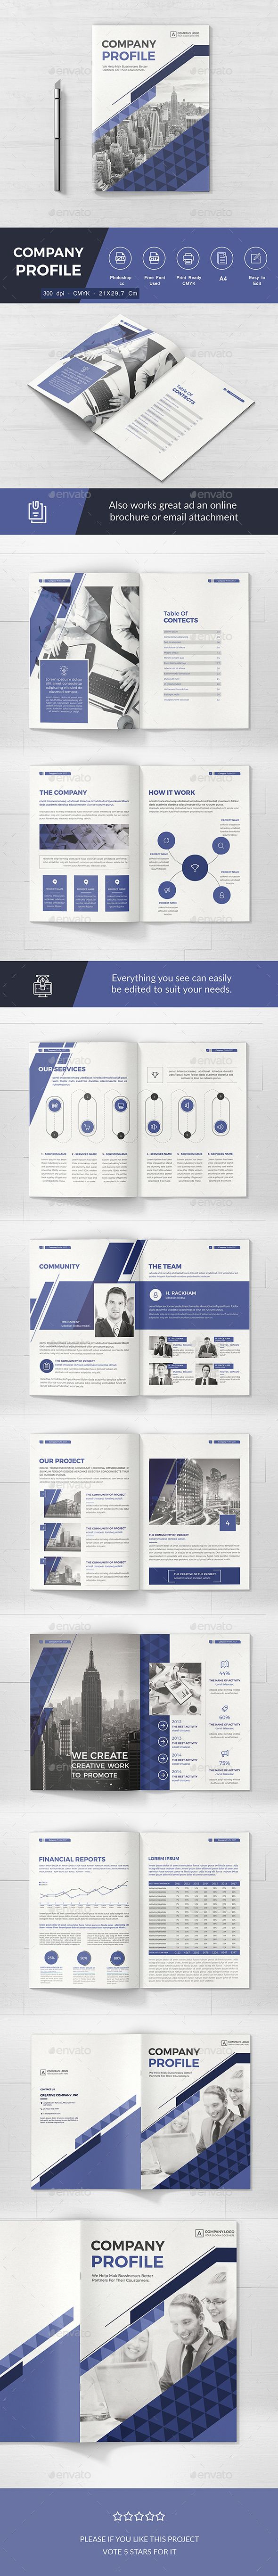 Company Brochure by mondoo Company Profile template Professional, clean and modern 16 page Company Profile. Just drop in your own pictures and texts, and it